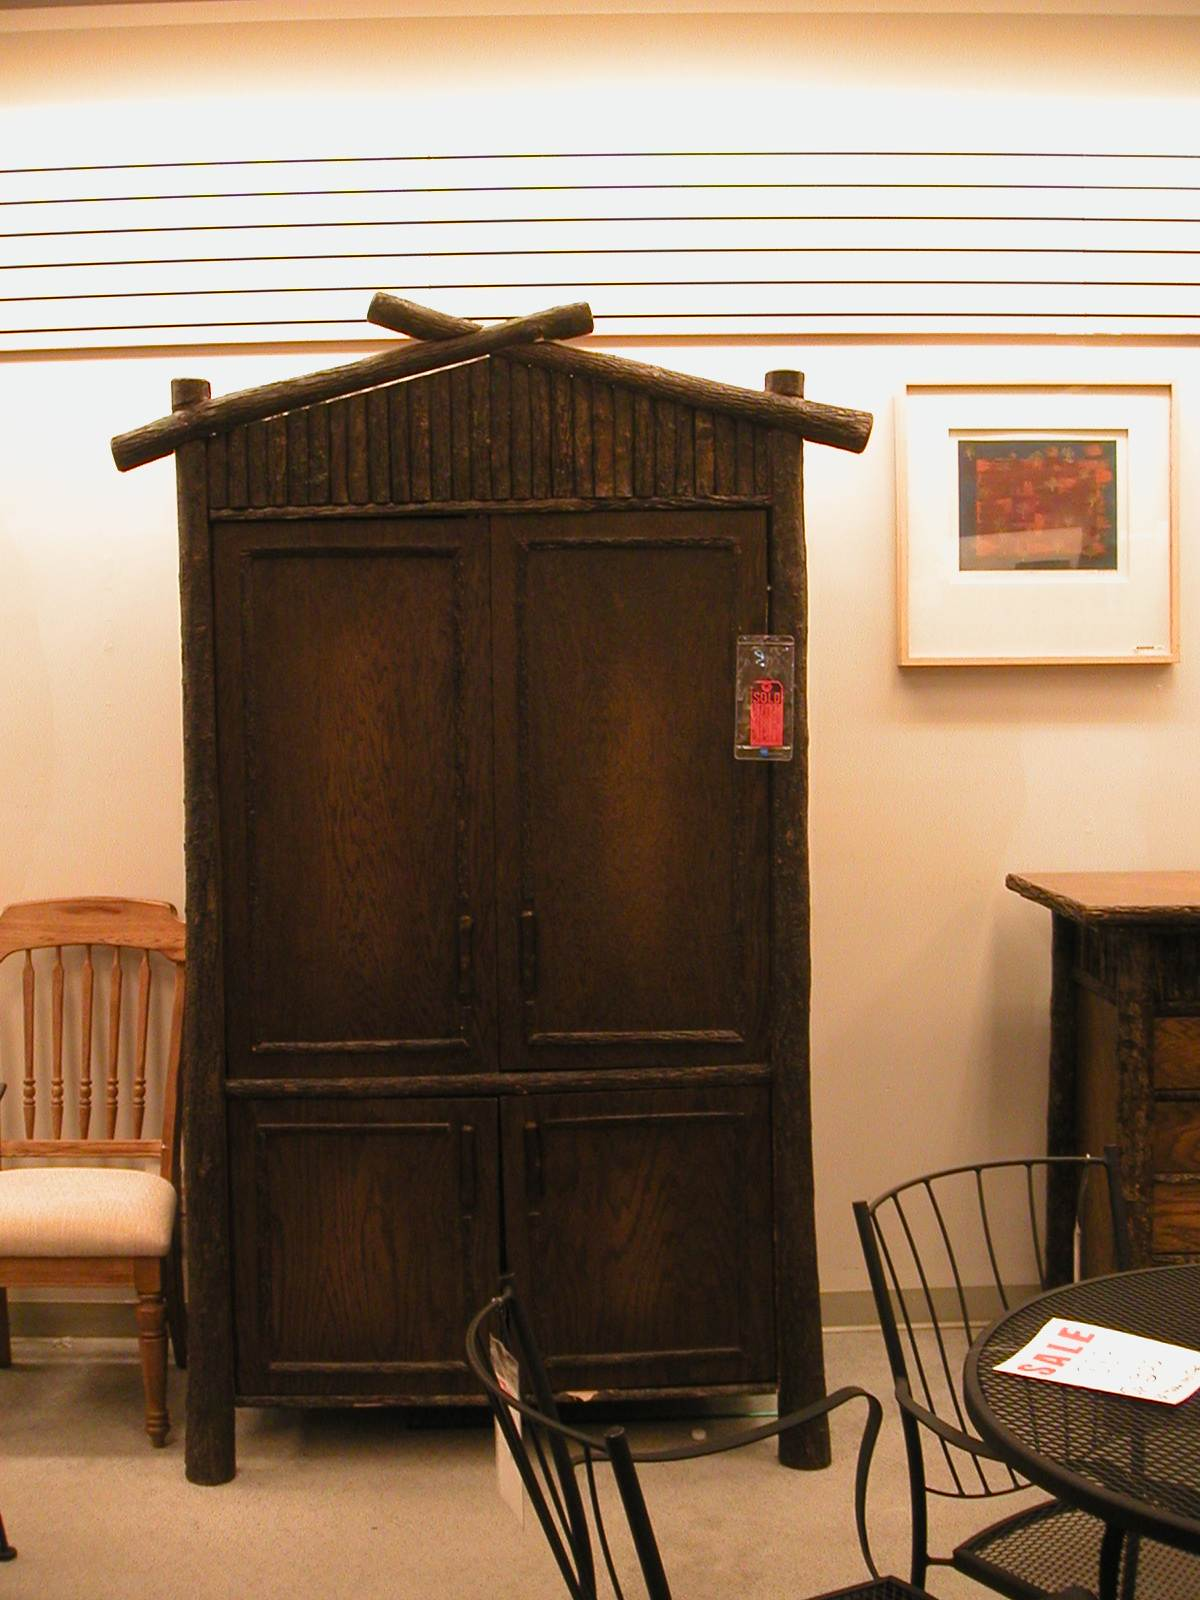 hickory tv cabinet on clearance at a robb and stuckey furniture outlet several years ago - Old Hickory Furniture